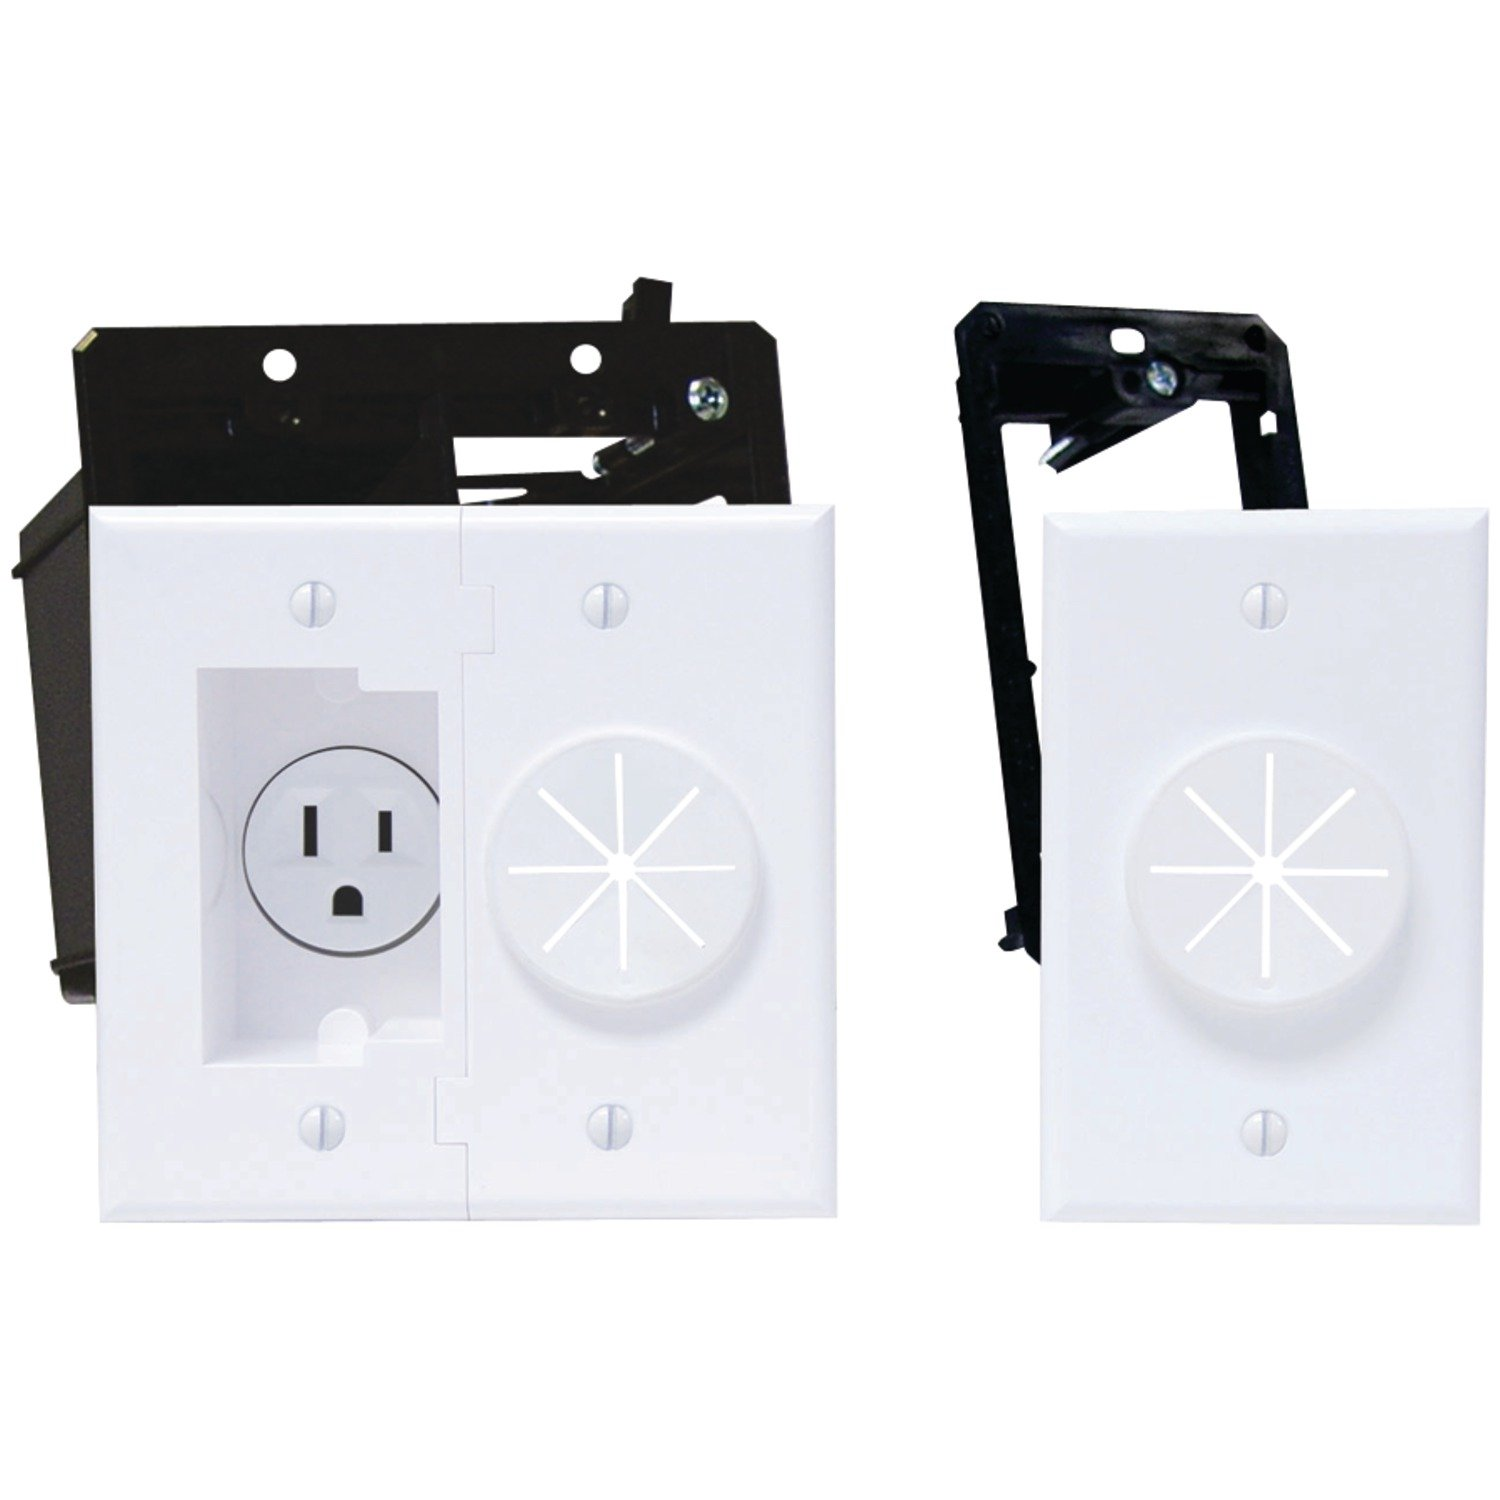 MIDLITE Power+Port Recessed Receptacle Kit & Wireport with Grommet Home Audio Crossover, White (2A5251-1G-W) by MIDLITE